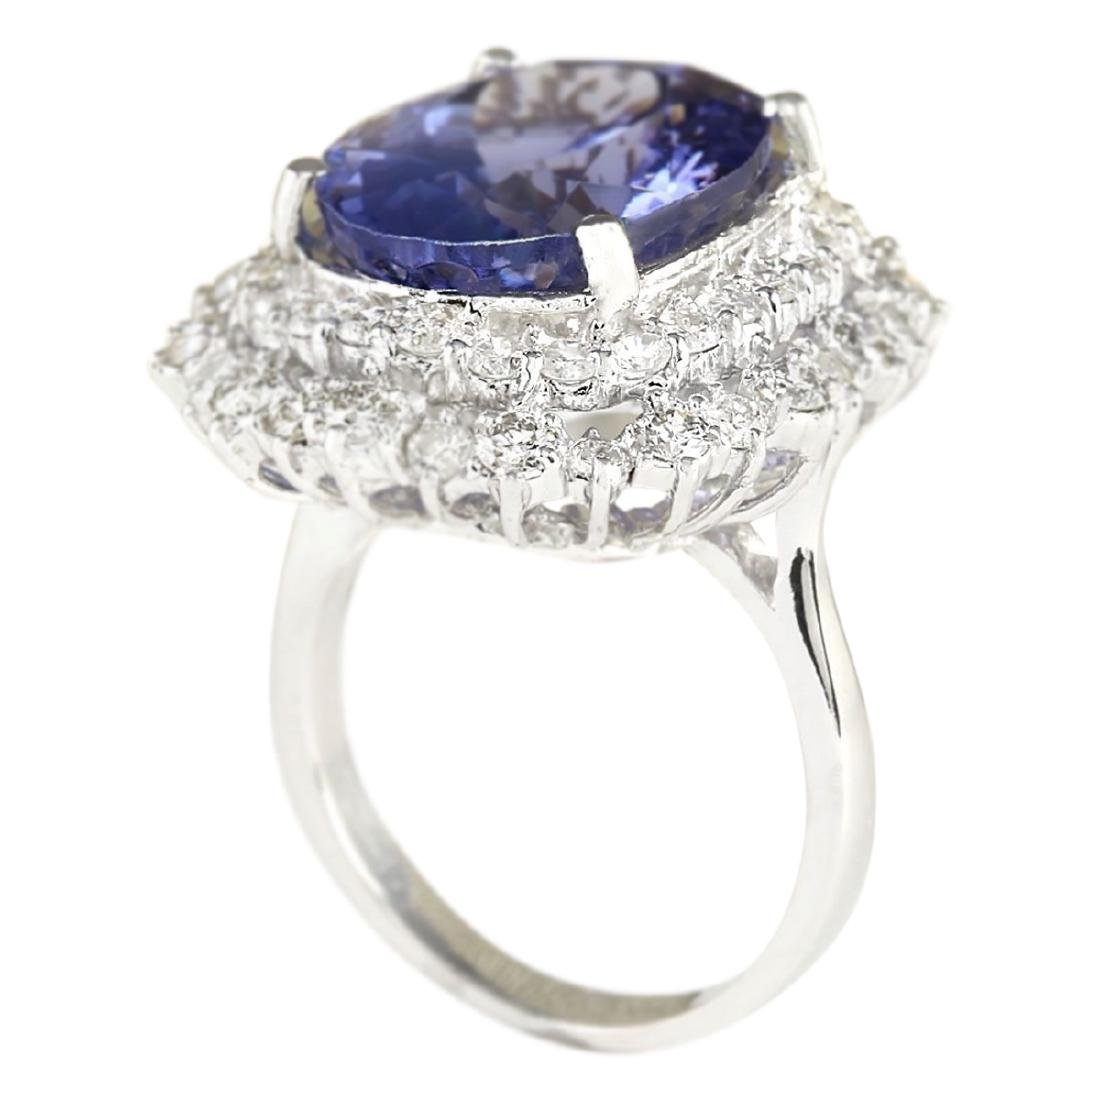 12.86 CTW Natural Blue Tanzanite And Diamond Ring 18K - 3